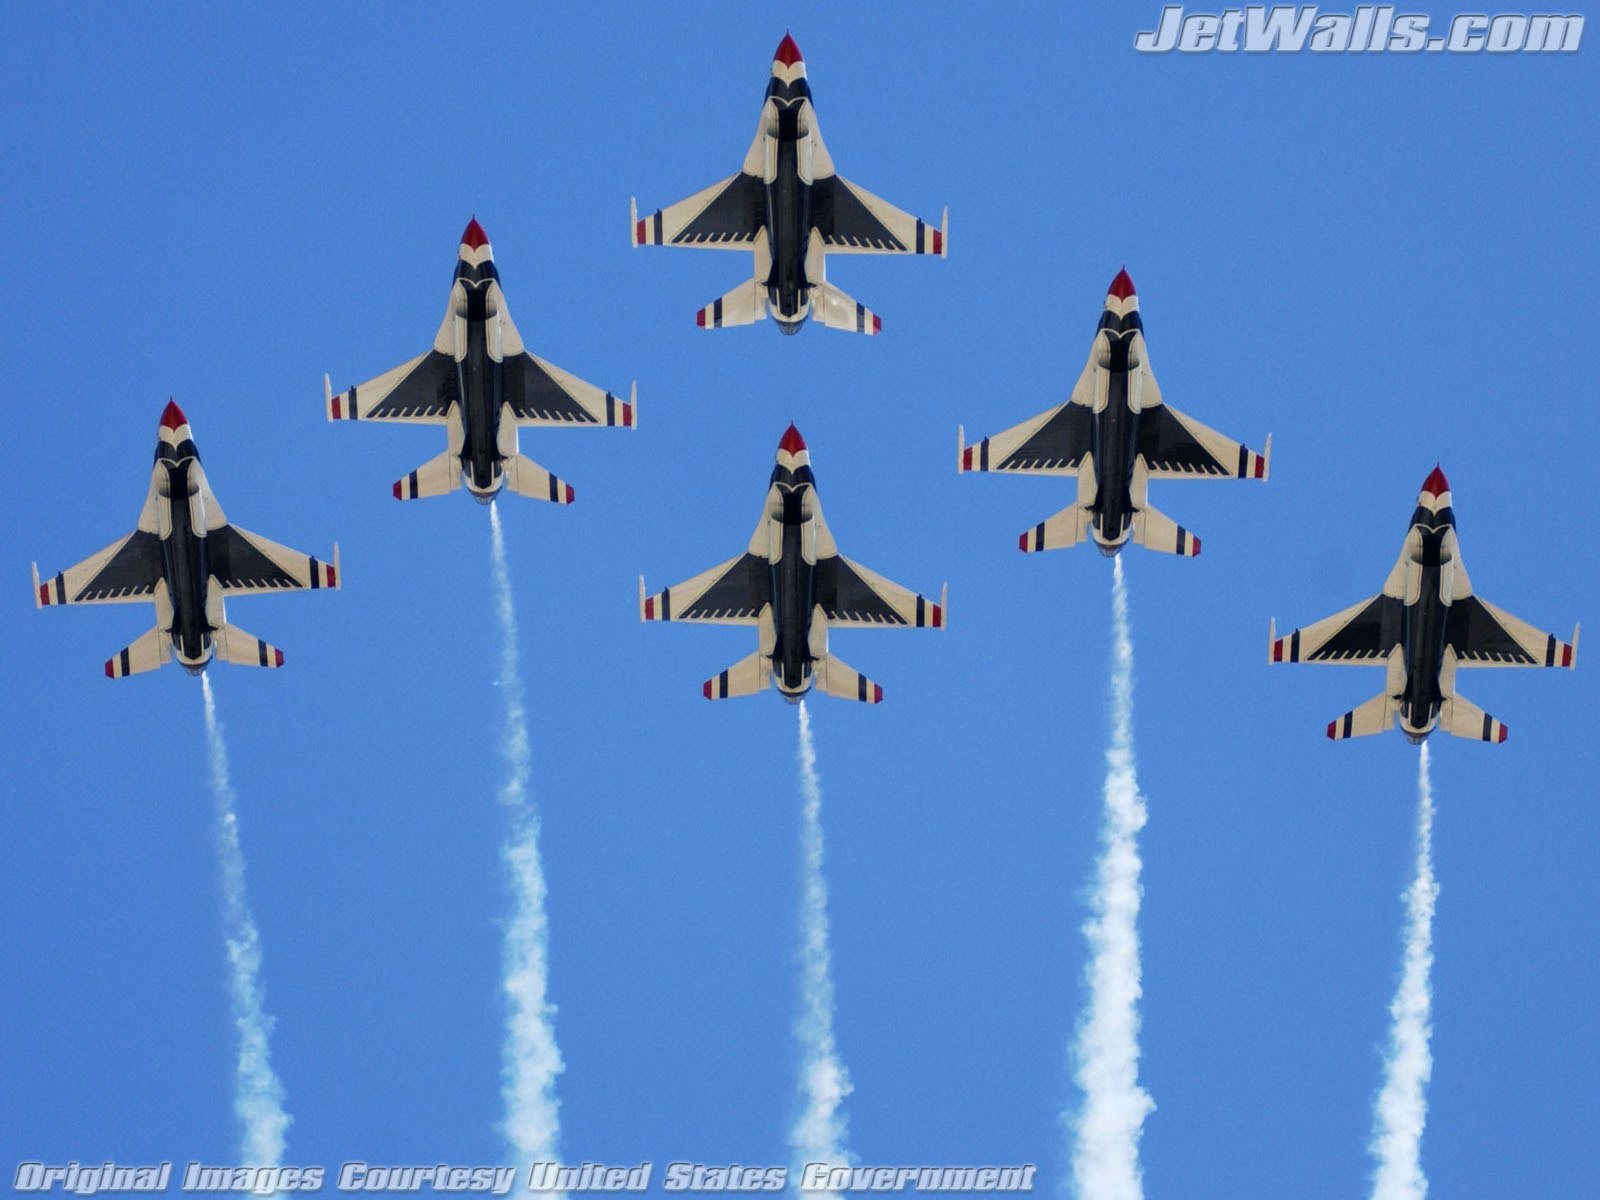 """U.S. Air Force Thunderbirds"" - Wallpaper No. 66 of 101. Right click for saving options."